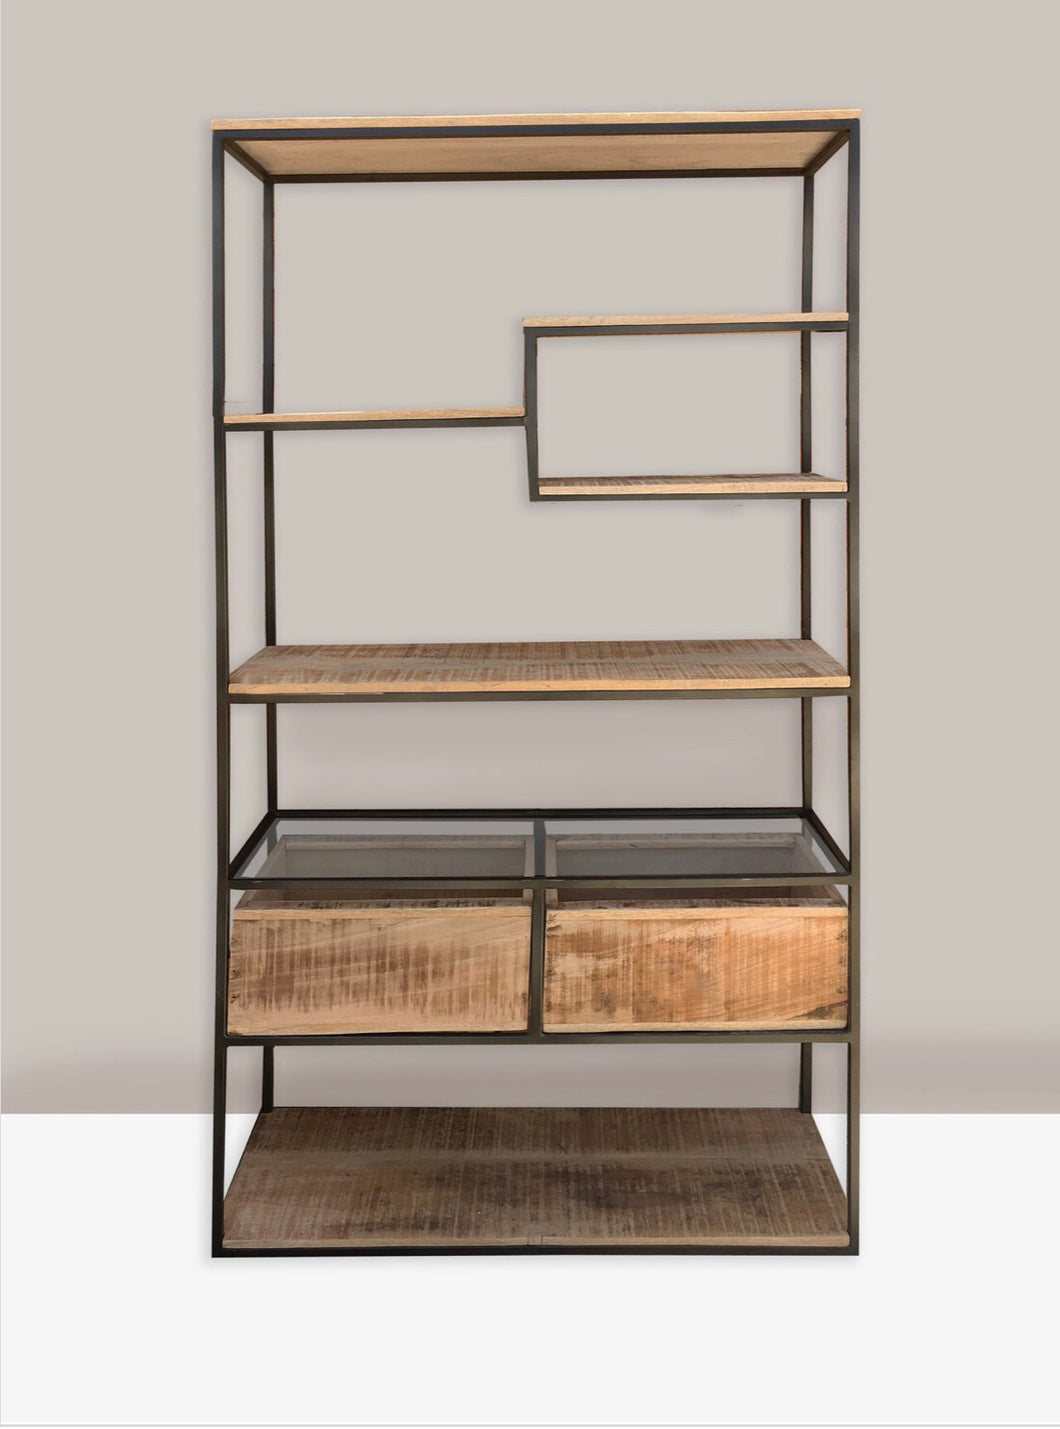 Dassie Artisan Taya Shelving Unit - Sands Boutique clothing and gifts